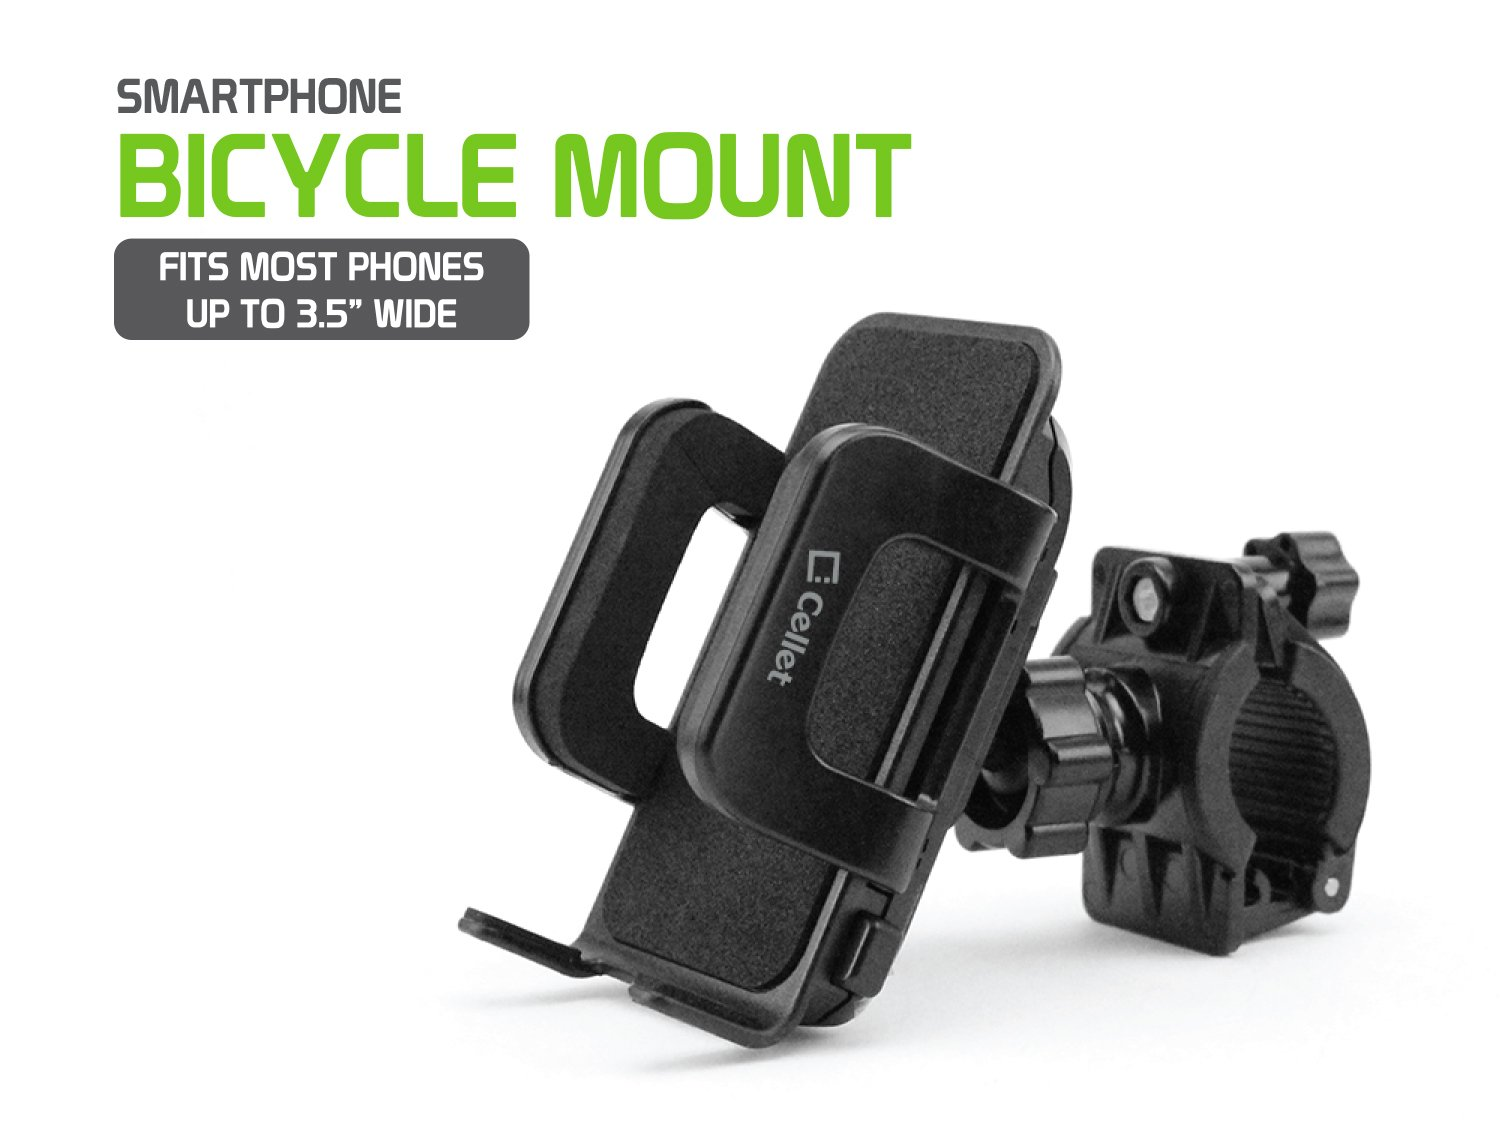 Smartphone Bicycle and Motorcycle Mount by Cellet PHM400 and Many More Fits Most Phones Up to 3.5 Inches Wide Including iPhone X//8//8 Plus Galaxy S8//S8 Plus 7//7 Plus 5//5s//5c S7 // S7 Edge Note 8